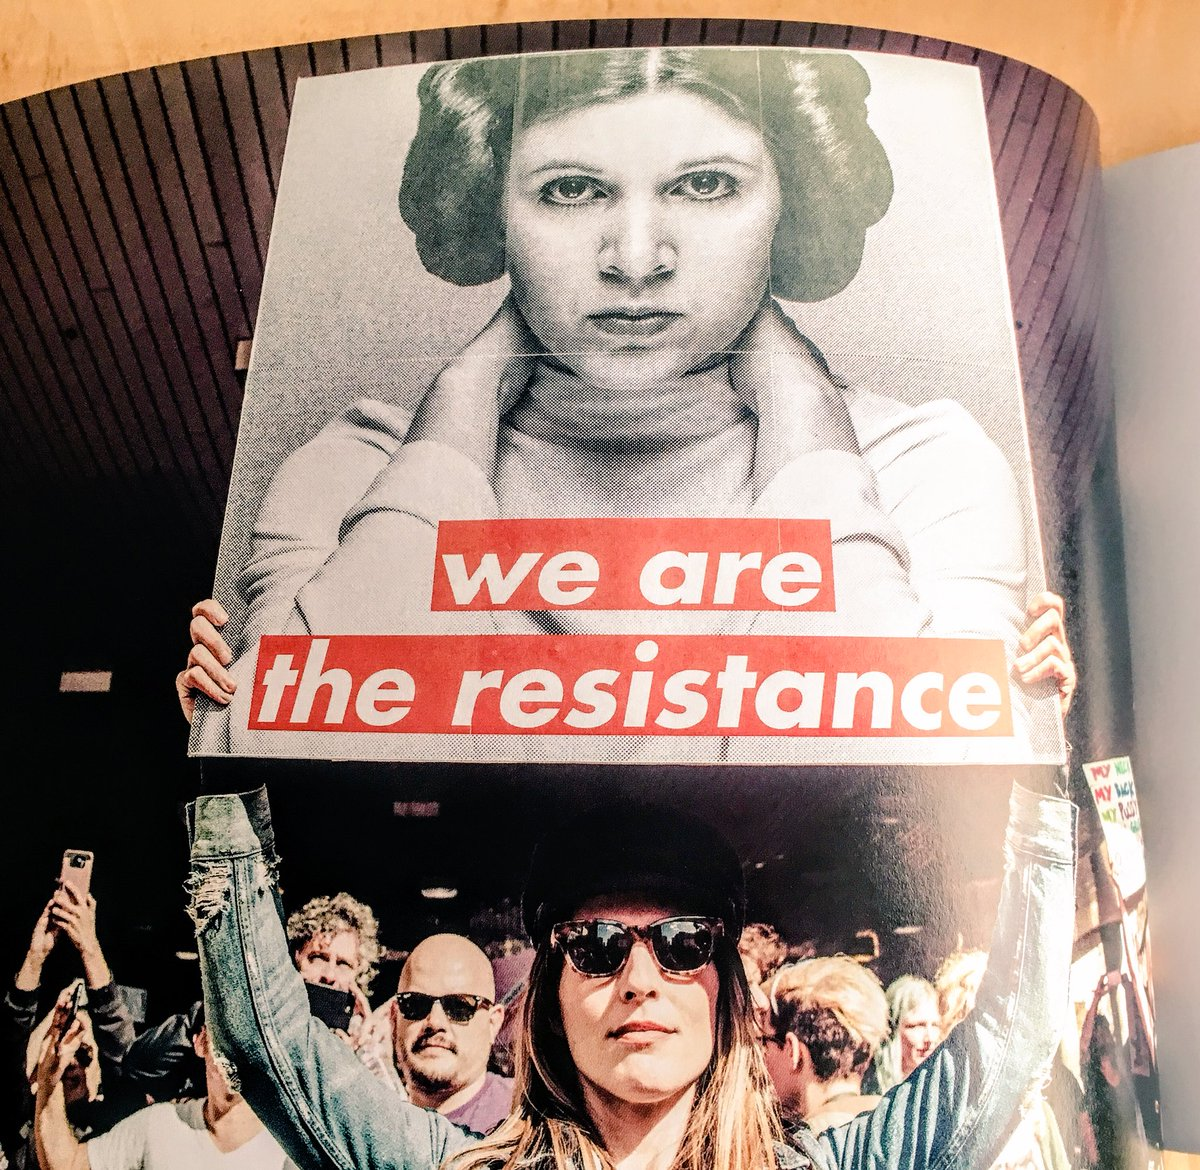 #WeAreTheResistance we march on Saturday...